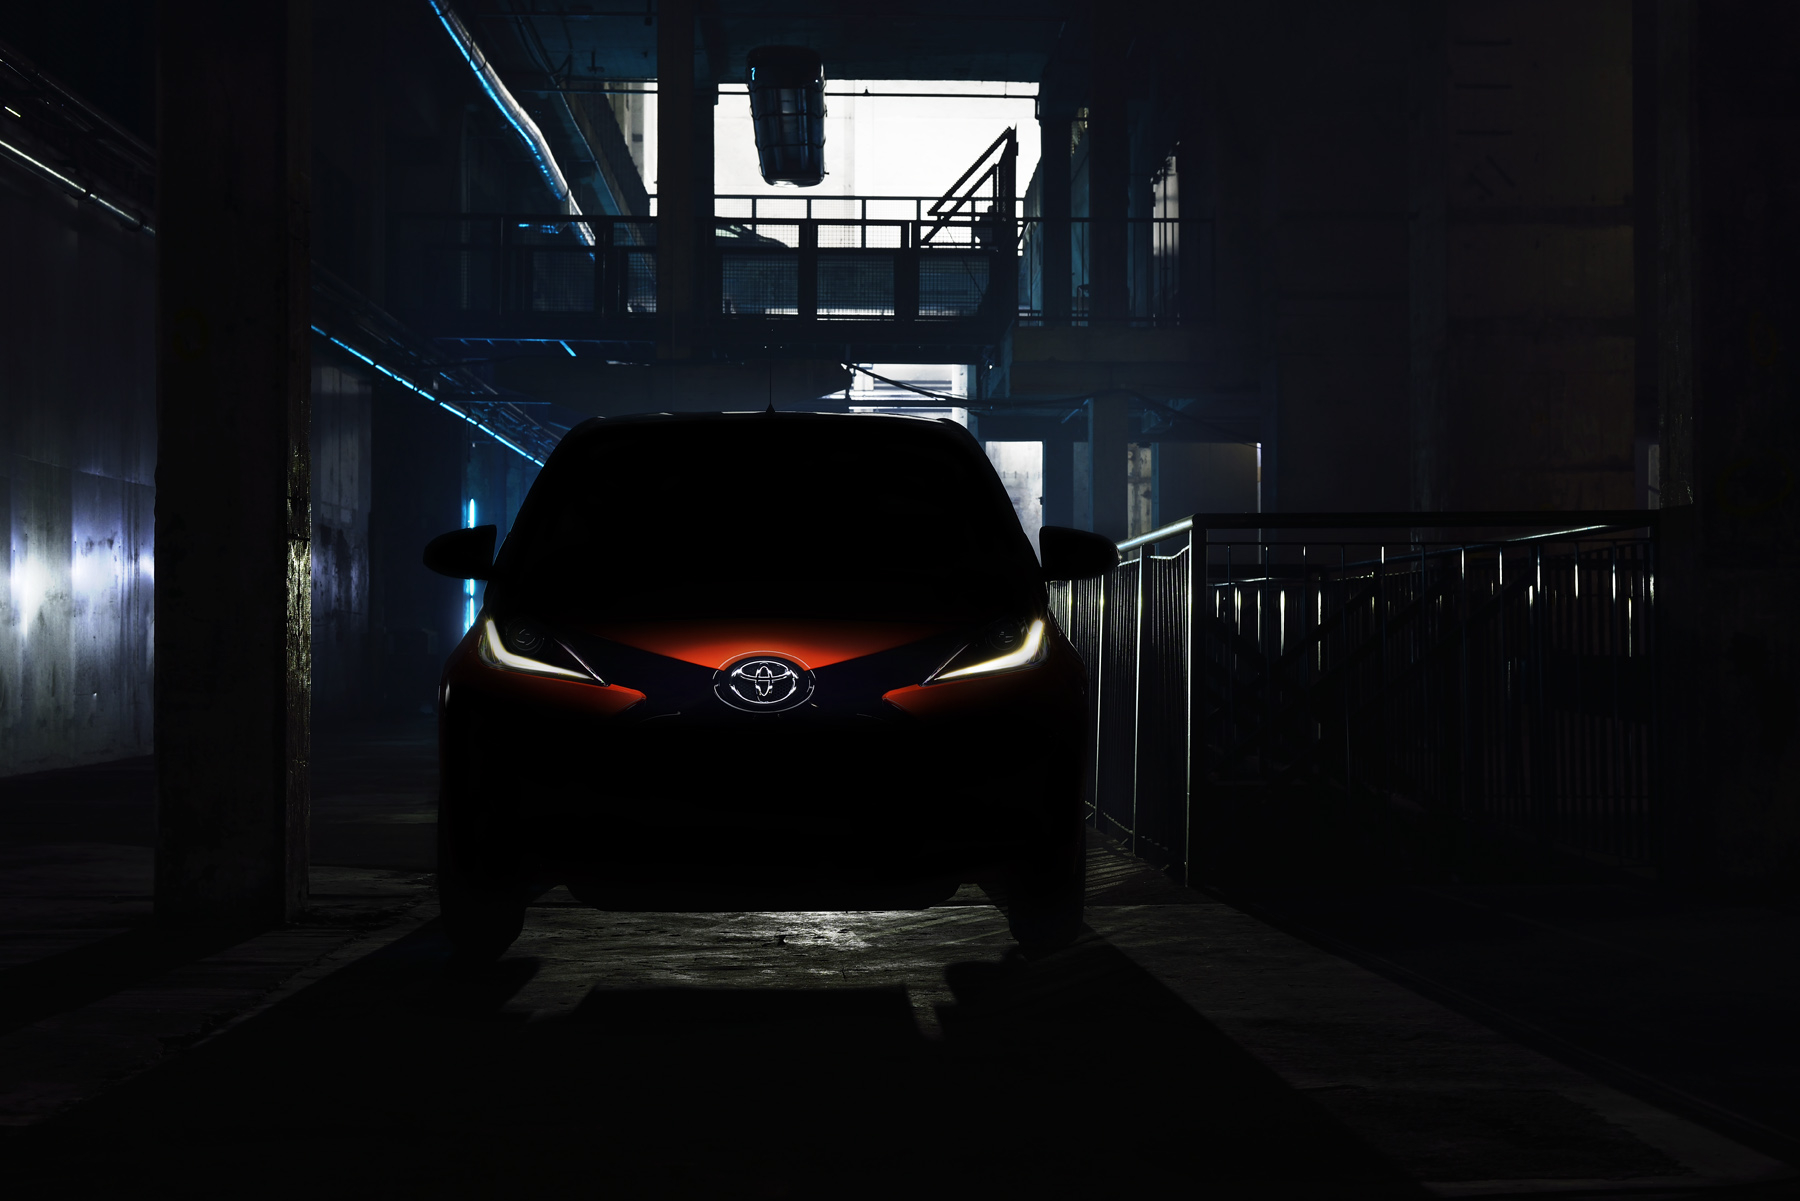 New Toyota Aygo first image